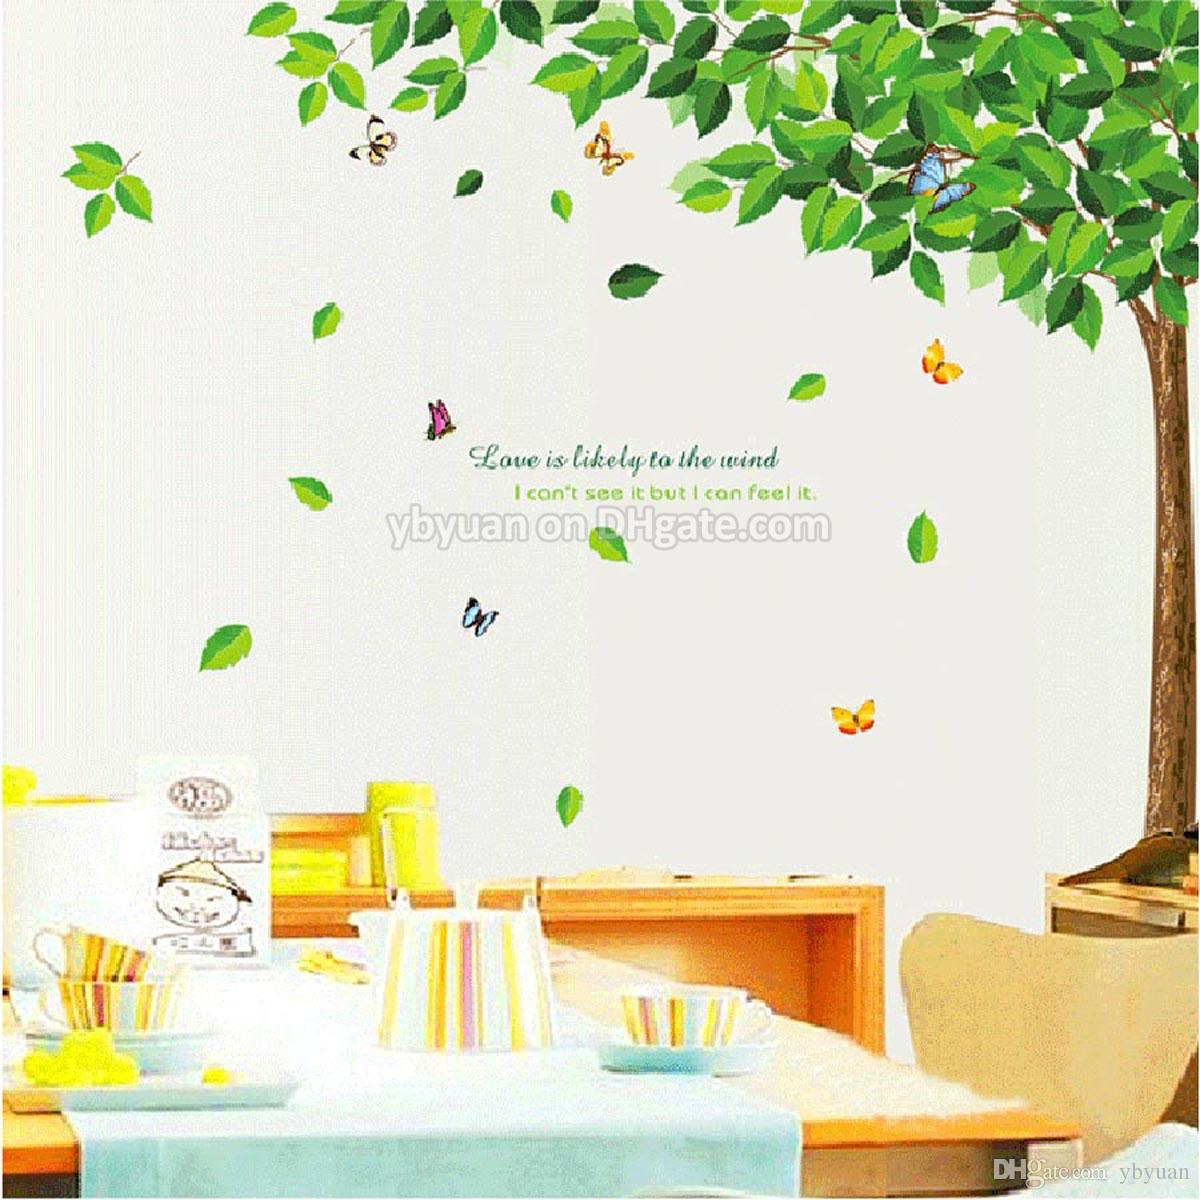 XL Big Green Tree Sticker Large Wall Stickers Decorative Living Room Sofa TV Background Removable Decals Bedroom Home Decoration